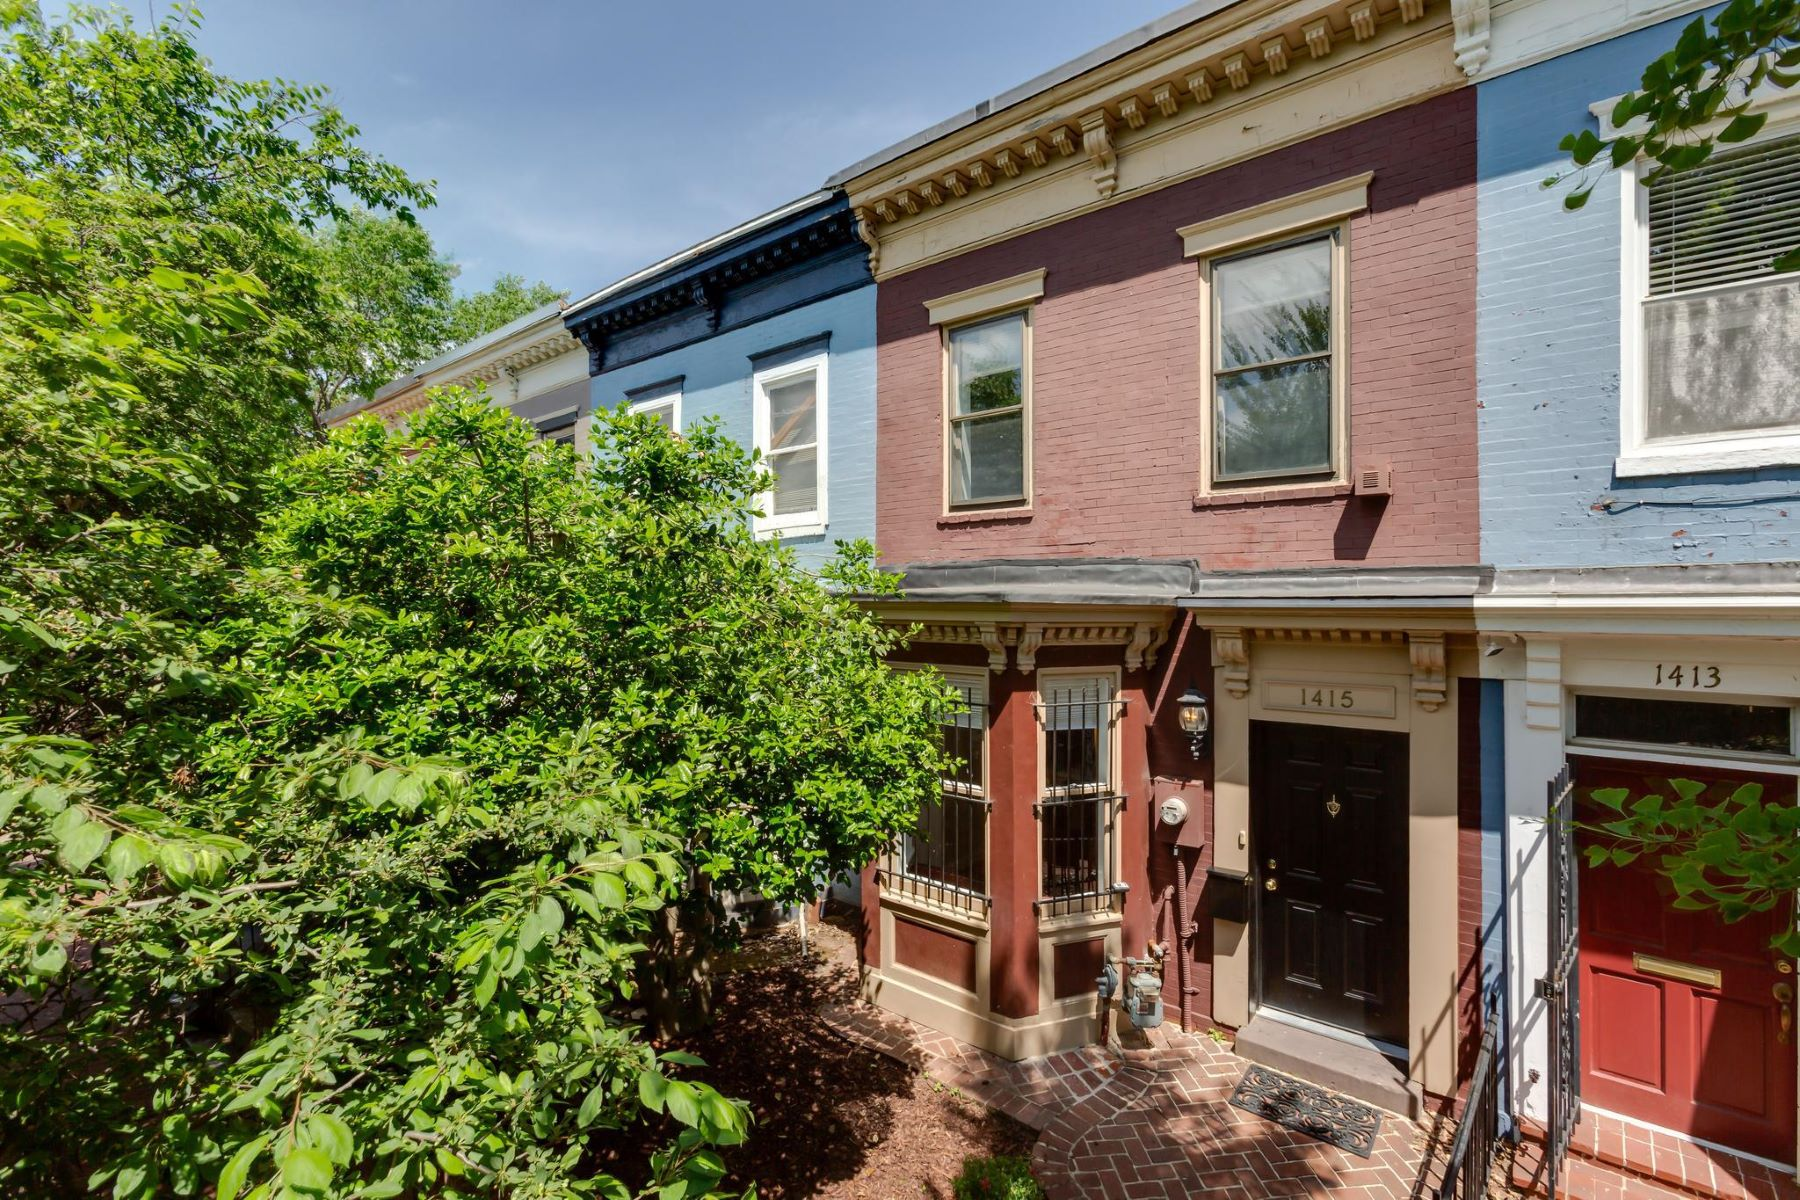 Townhouse for Sale at 1415 Columbia St NW Washington, District Of Columbia 20001 United States